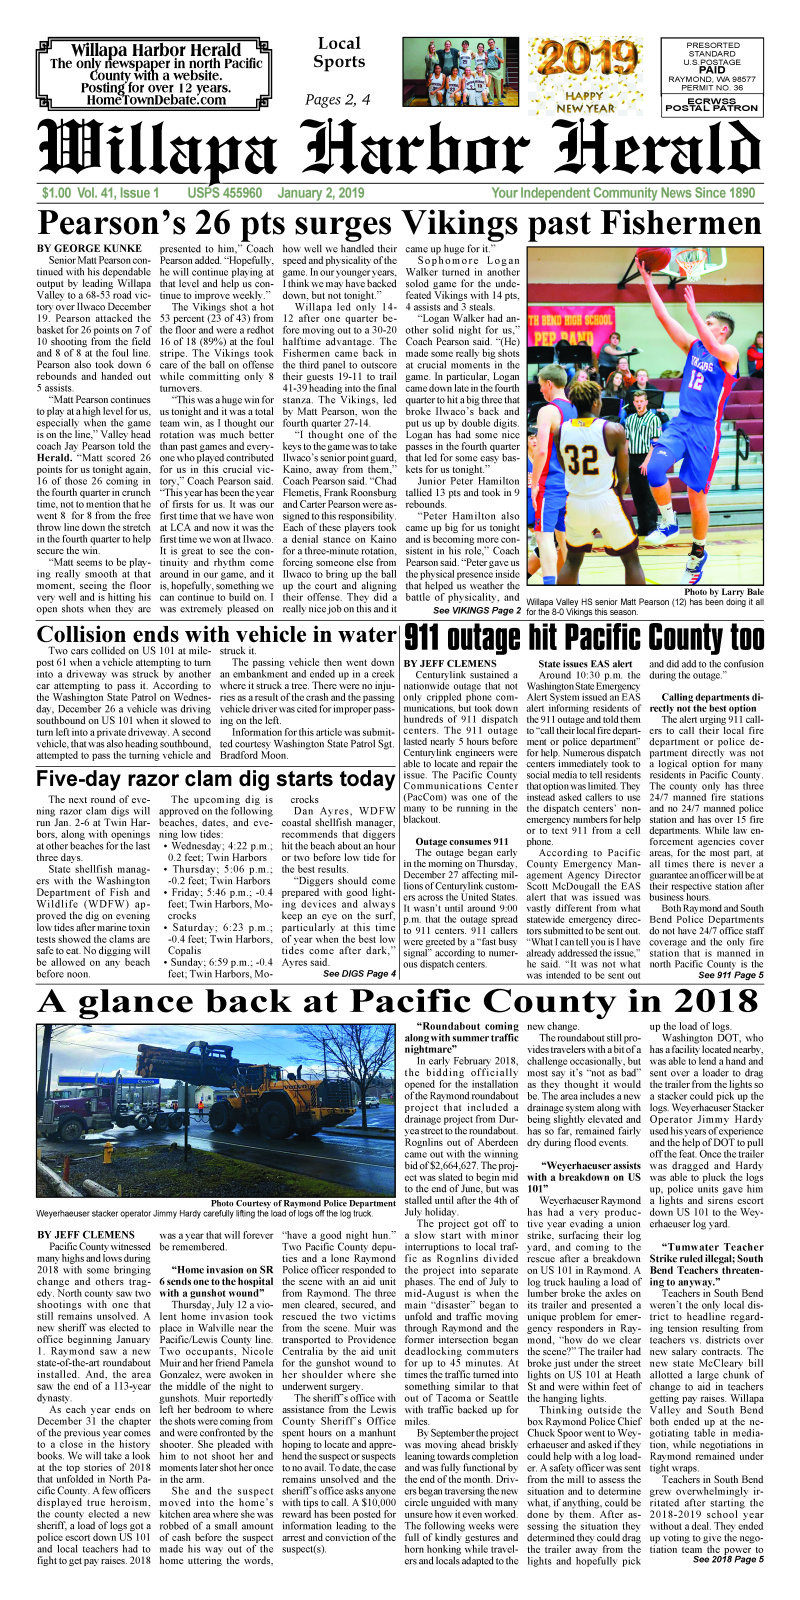 January 2, 2019 Willapa Harbor Herald